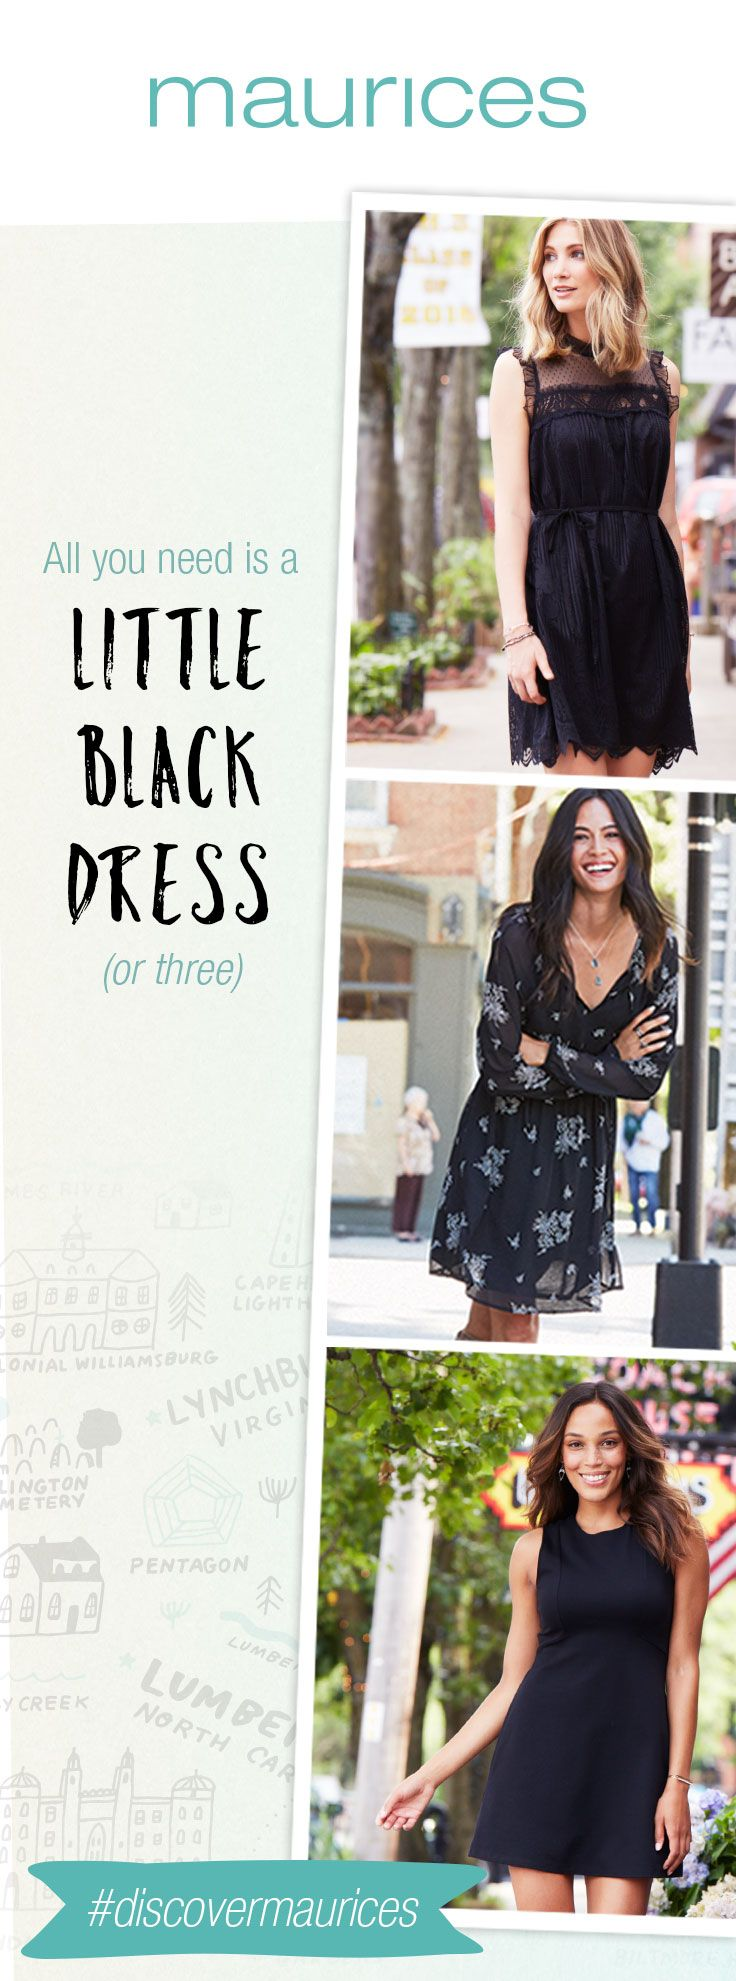 Let's talk LBD'S. Shop maurices.com for the perfect little black dresses for fall. Plus, get FREE shipping when you pick up in store or on orders of $50 or more.